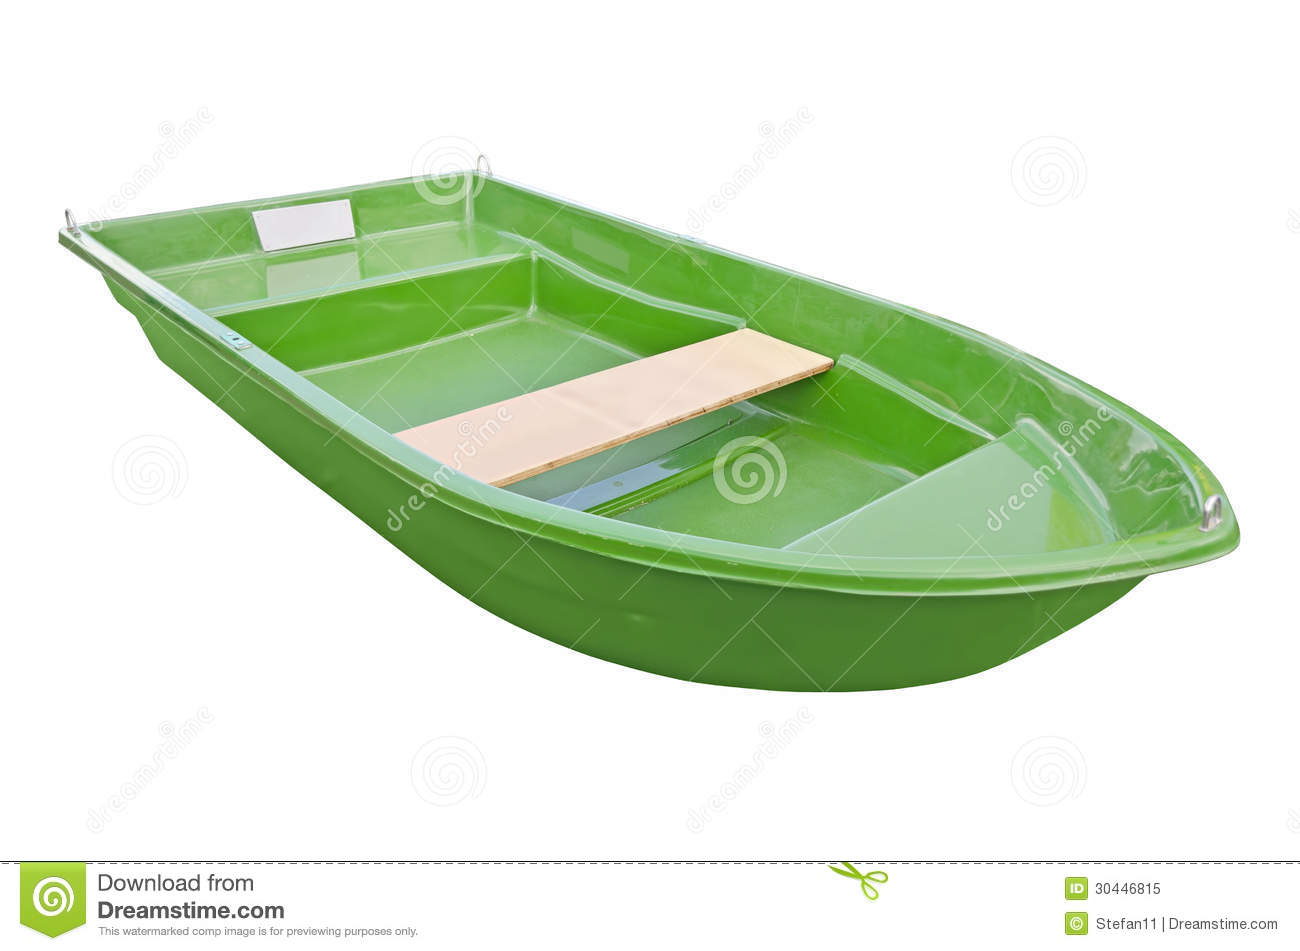 Green Boat Royalty Free Stock Photo - Image: 30446815